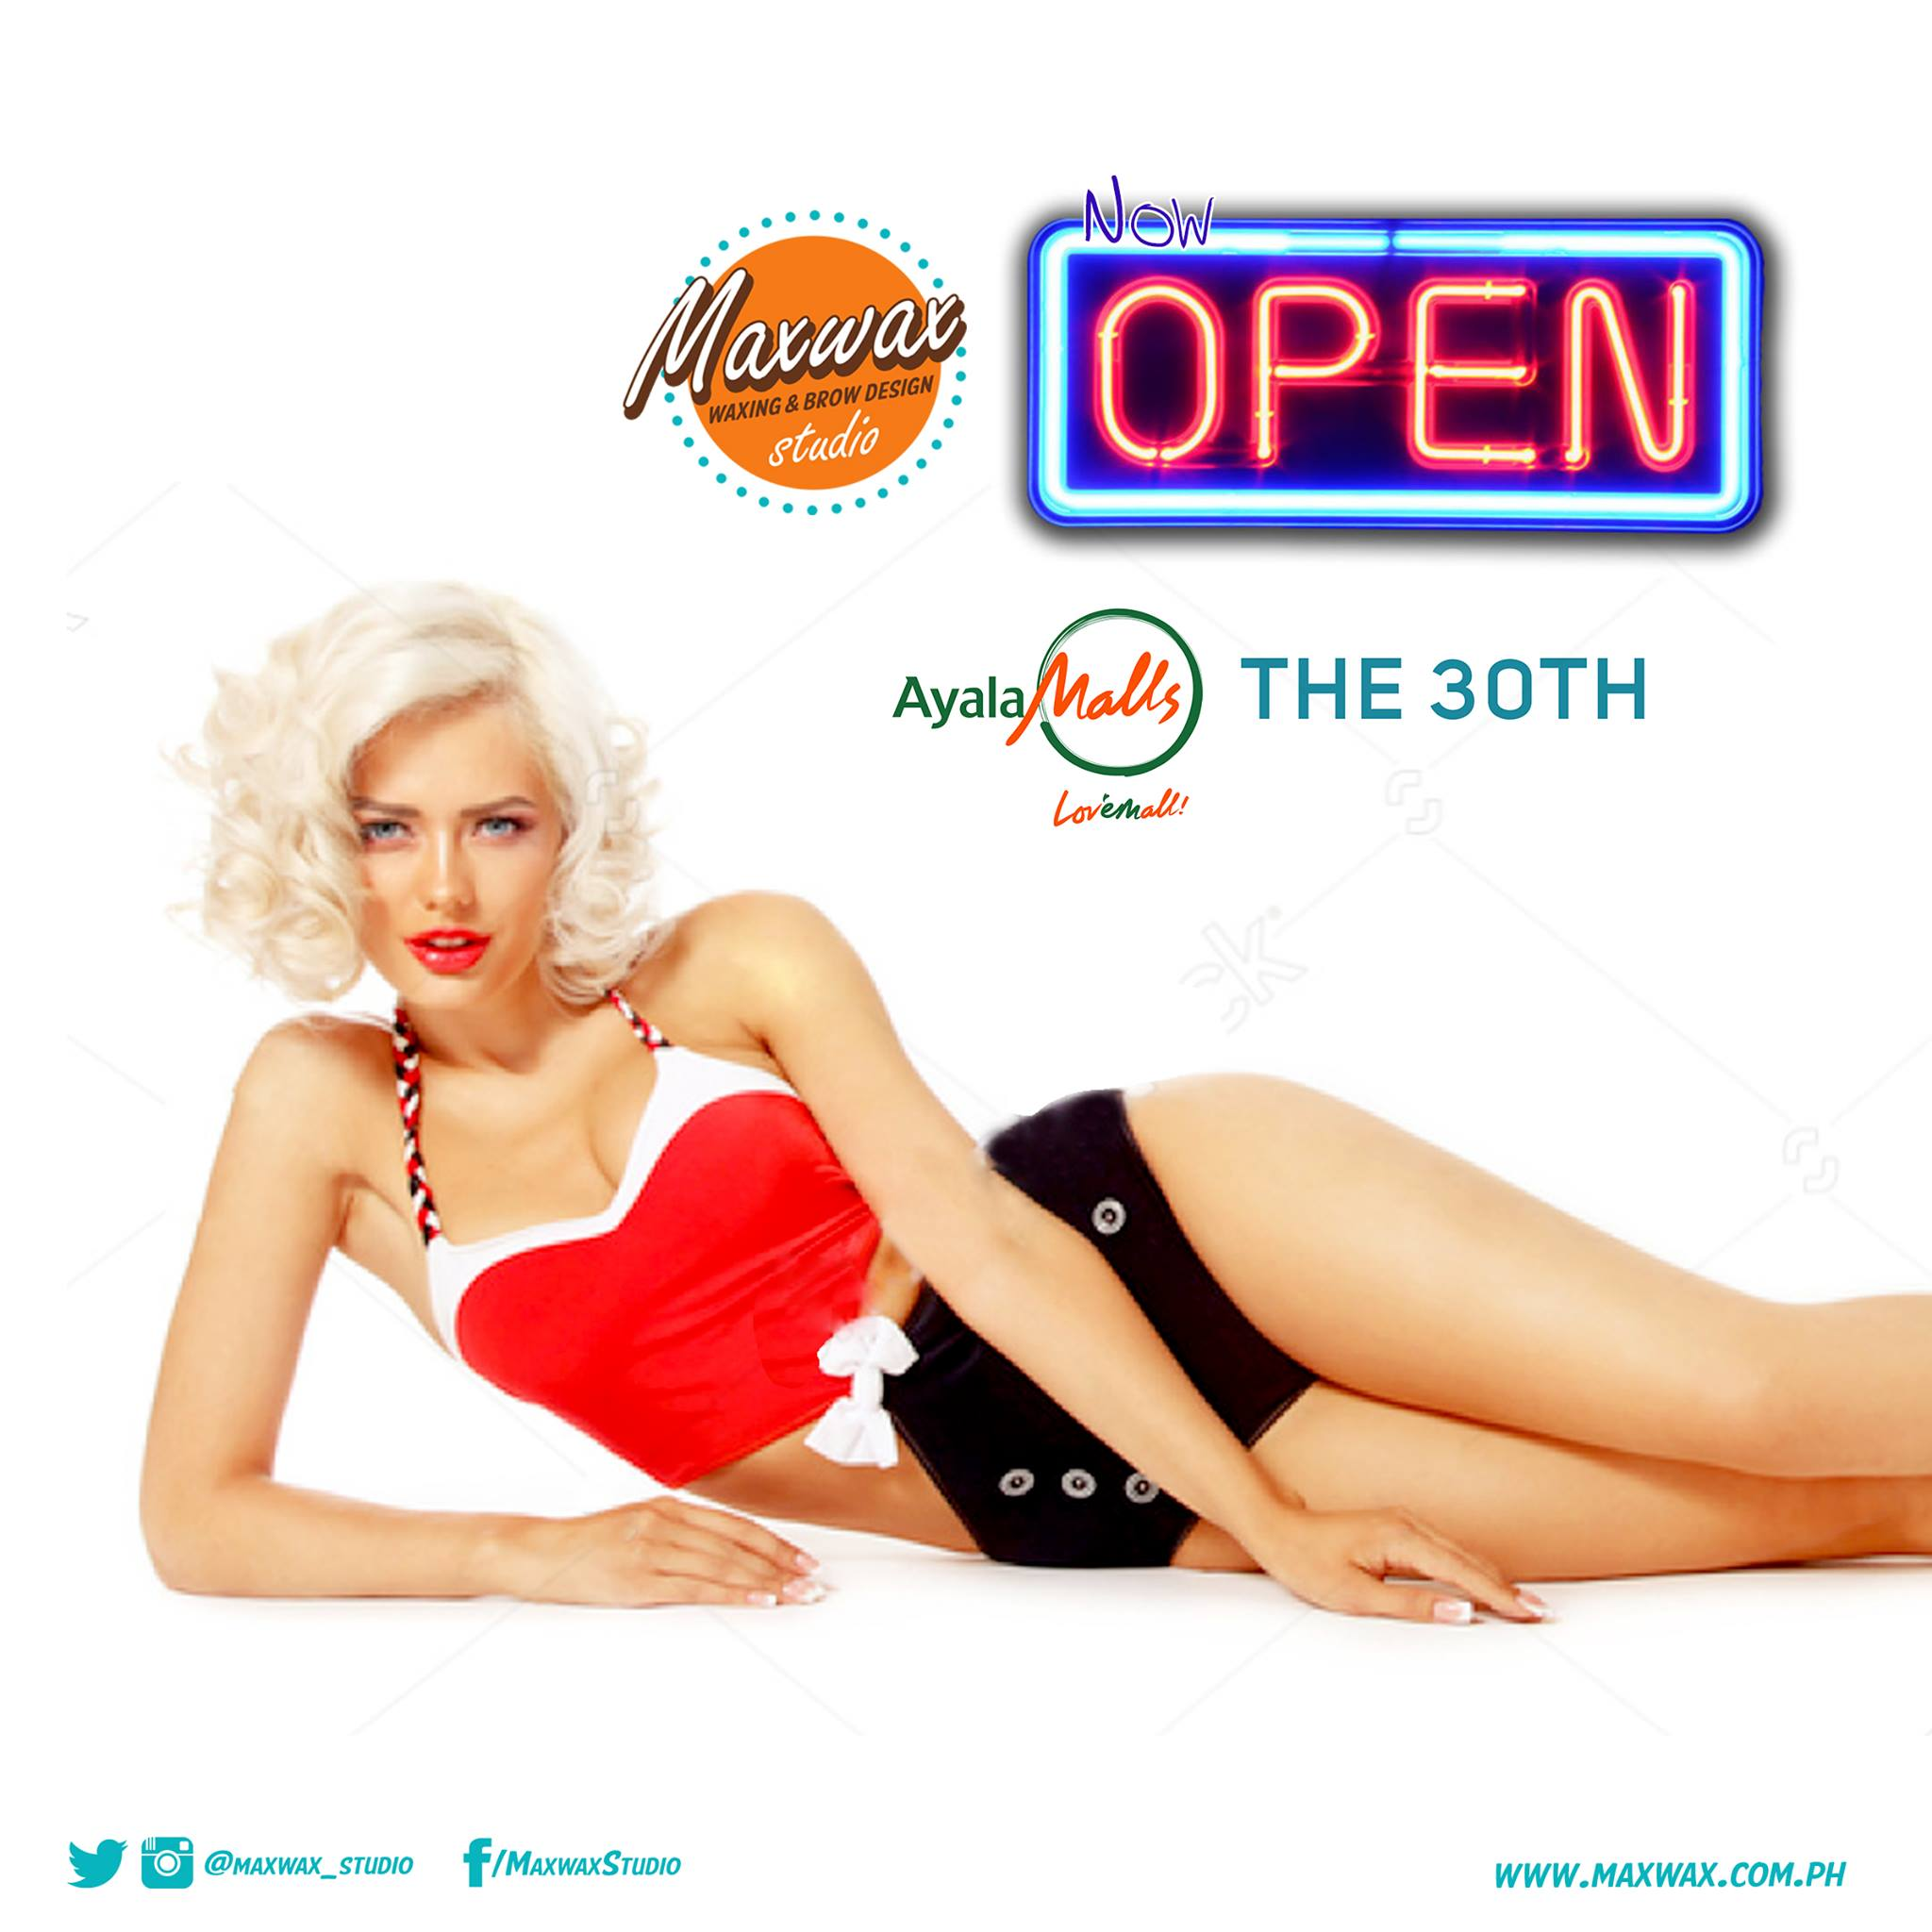 Maxwax opens its 3rd Branch in Ayala Malls The 30th